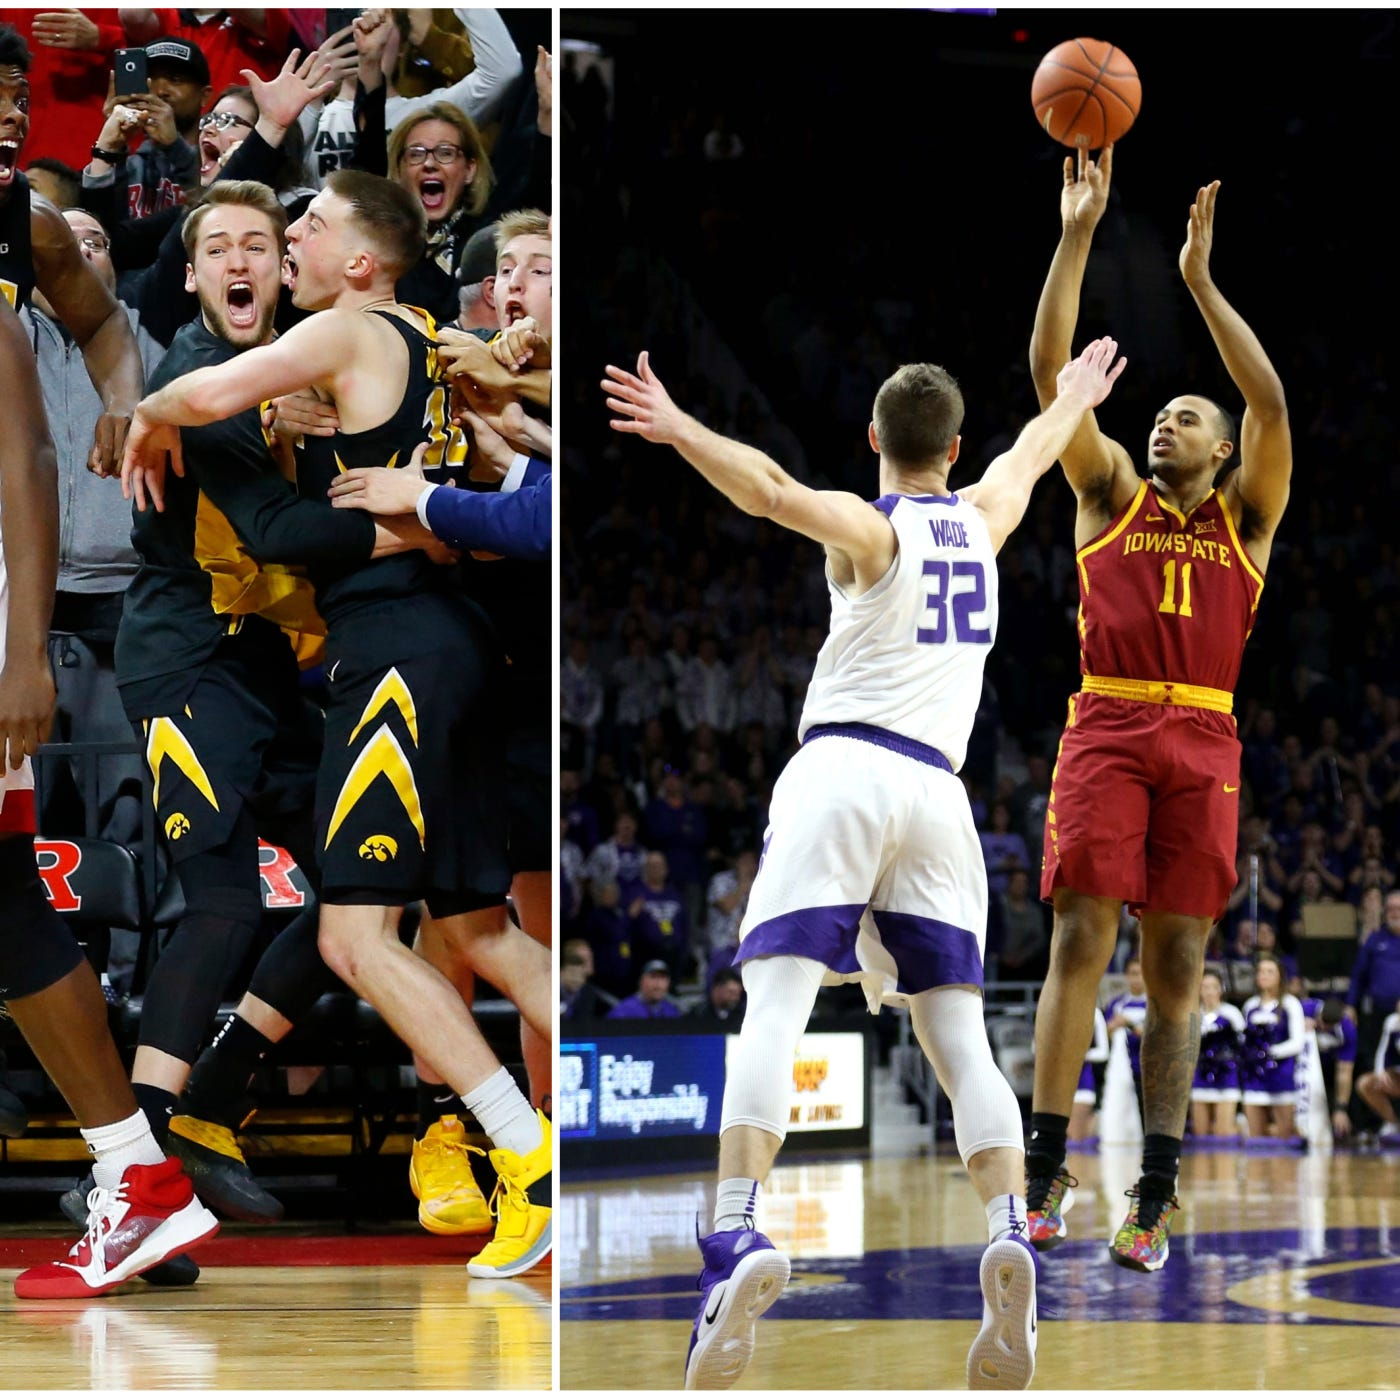 Do you believe in miracles? Poll voters tell Hawkeyes 'nope'; Cyclones back into top 20